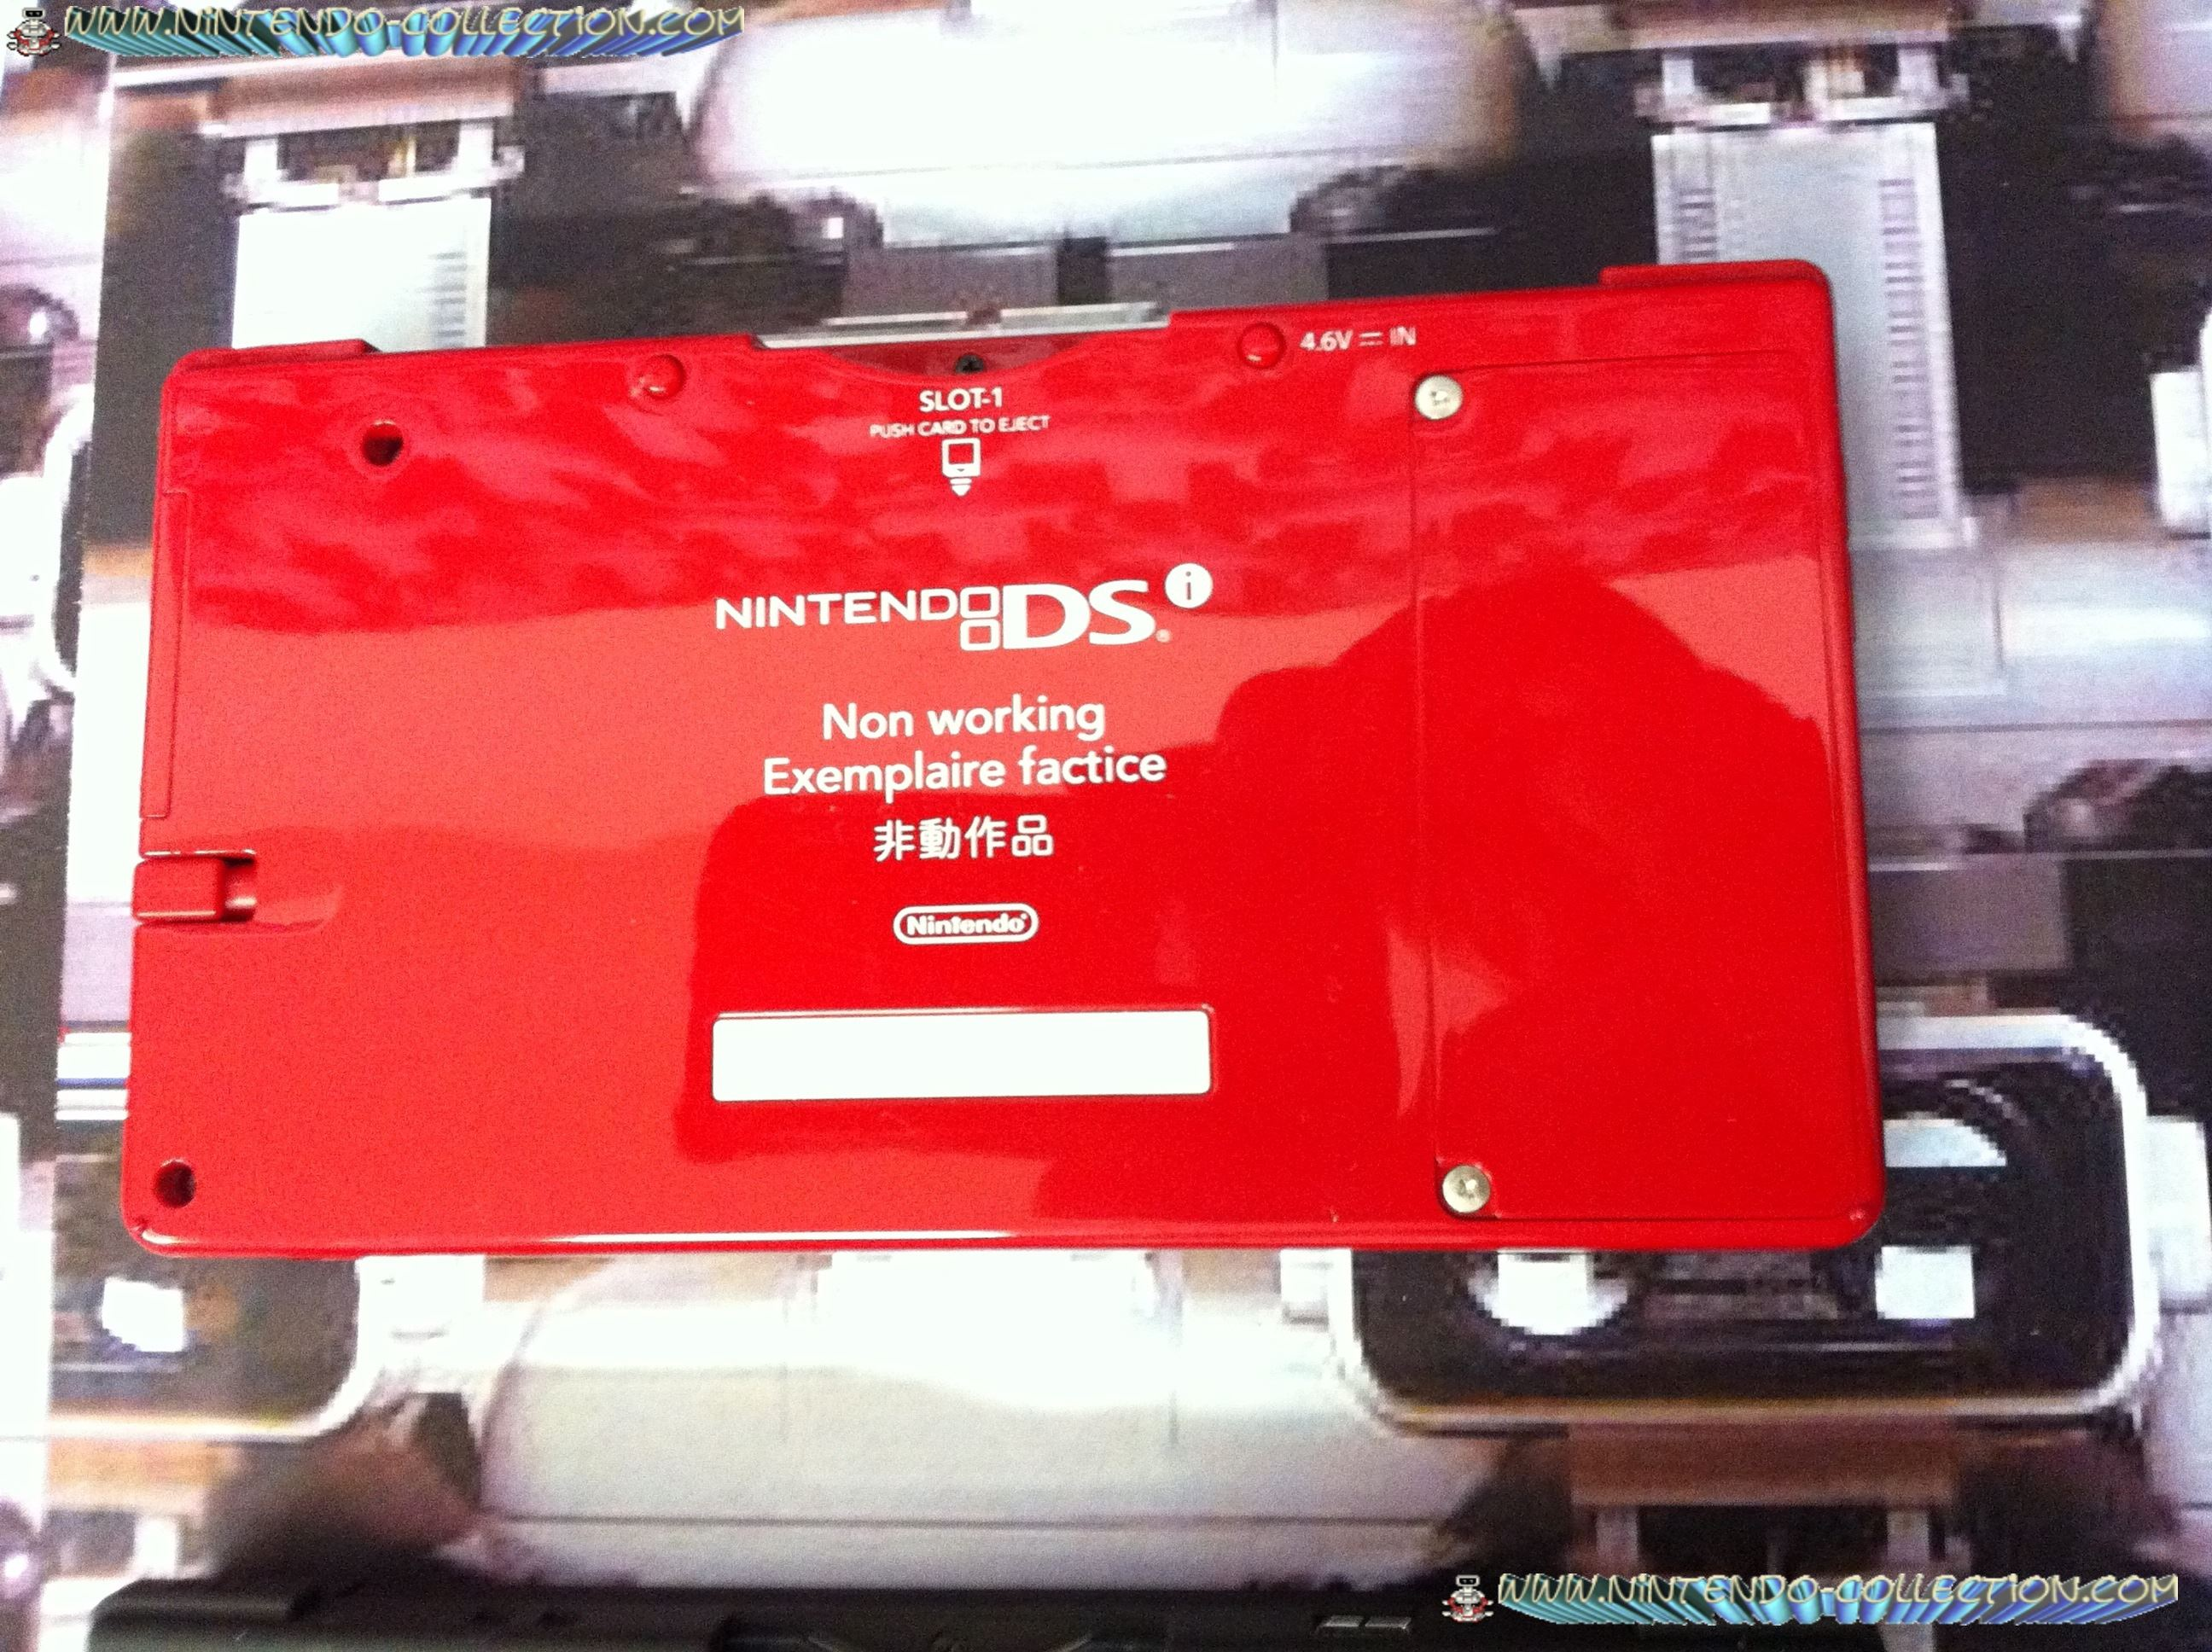 www.nintendo-collection.com - Vitrine Nintendo  DSi - 15